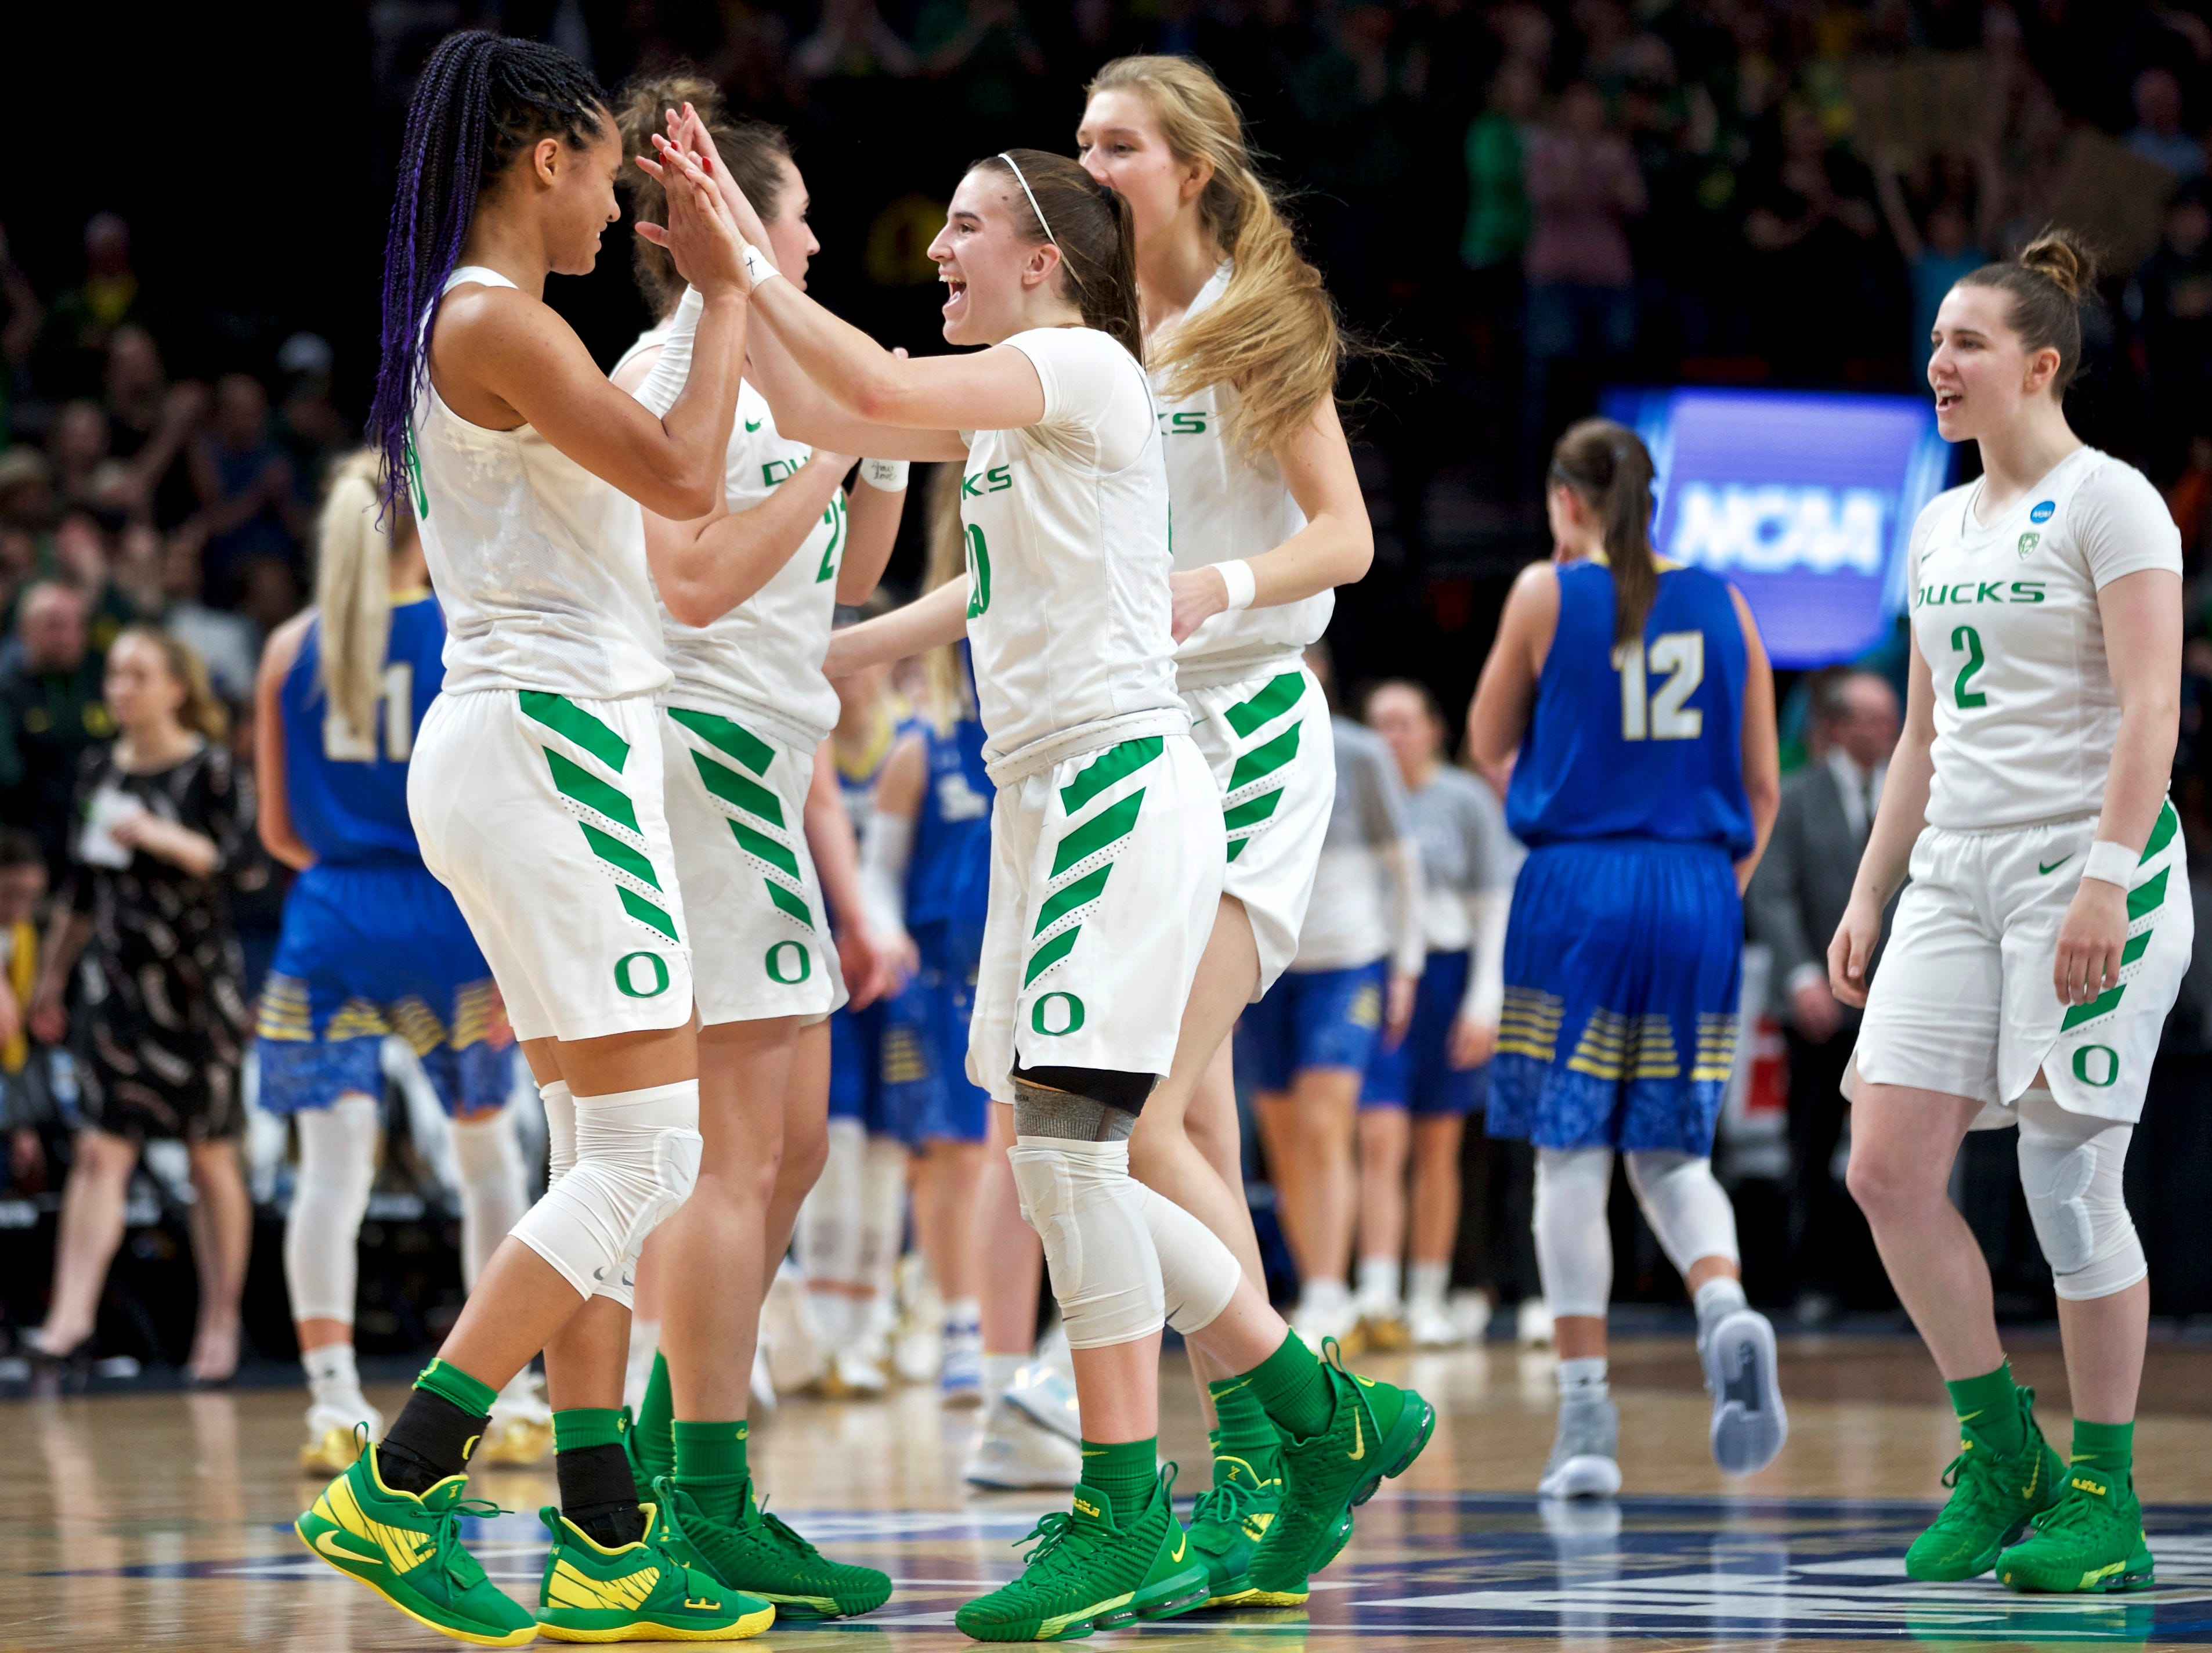 Oregon guard Sabrina Ionescu, center, high-fives forward Satou Sabally, left, at the end of a regional semifinal against South Dakota State in the NCAA women's college basketball tournament Friday, March 29, 2019, in Portland, Ore. Oregon won 63-53. (AP Photo/Craig Mitchelldyer)